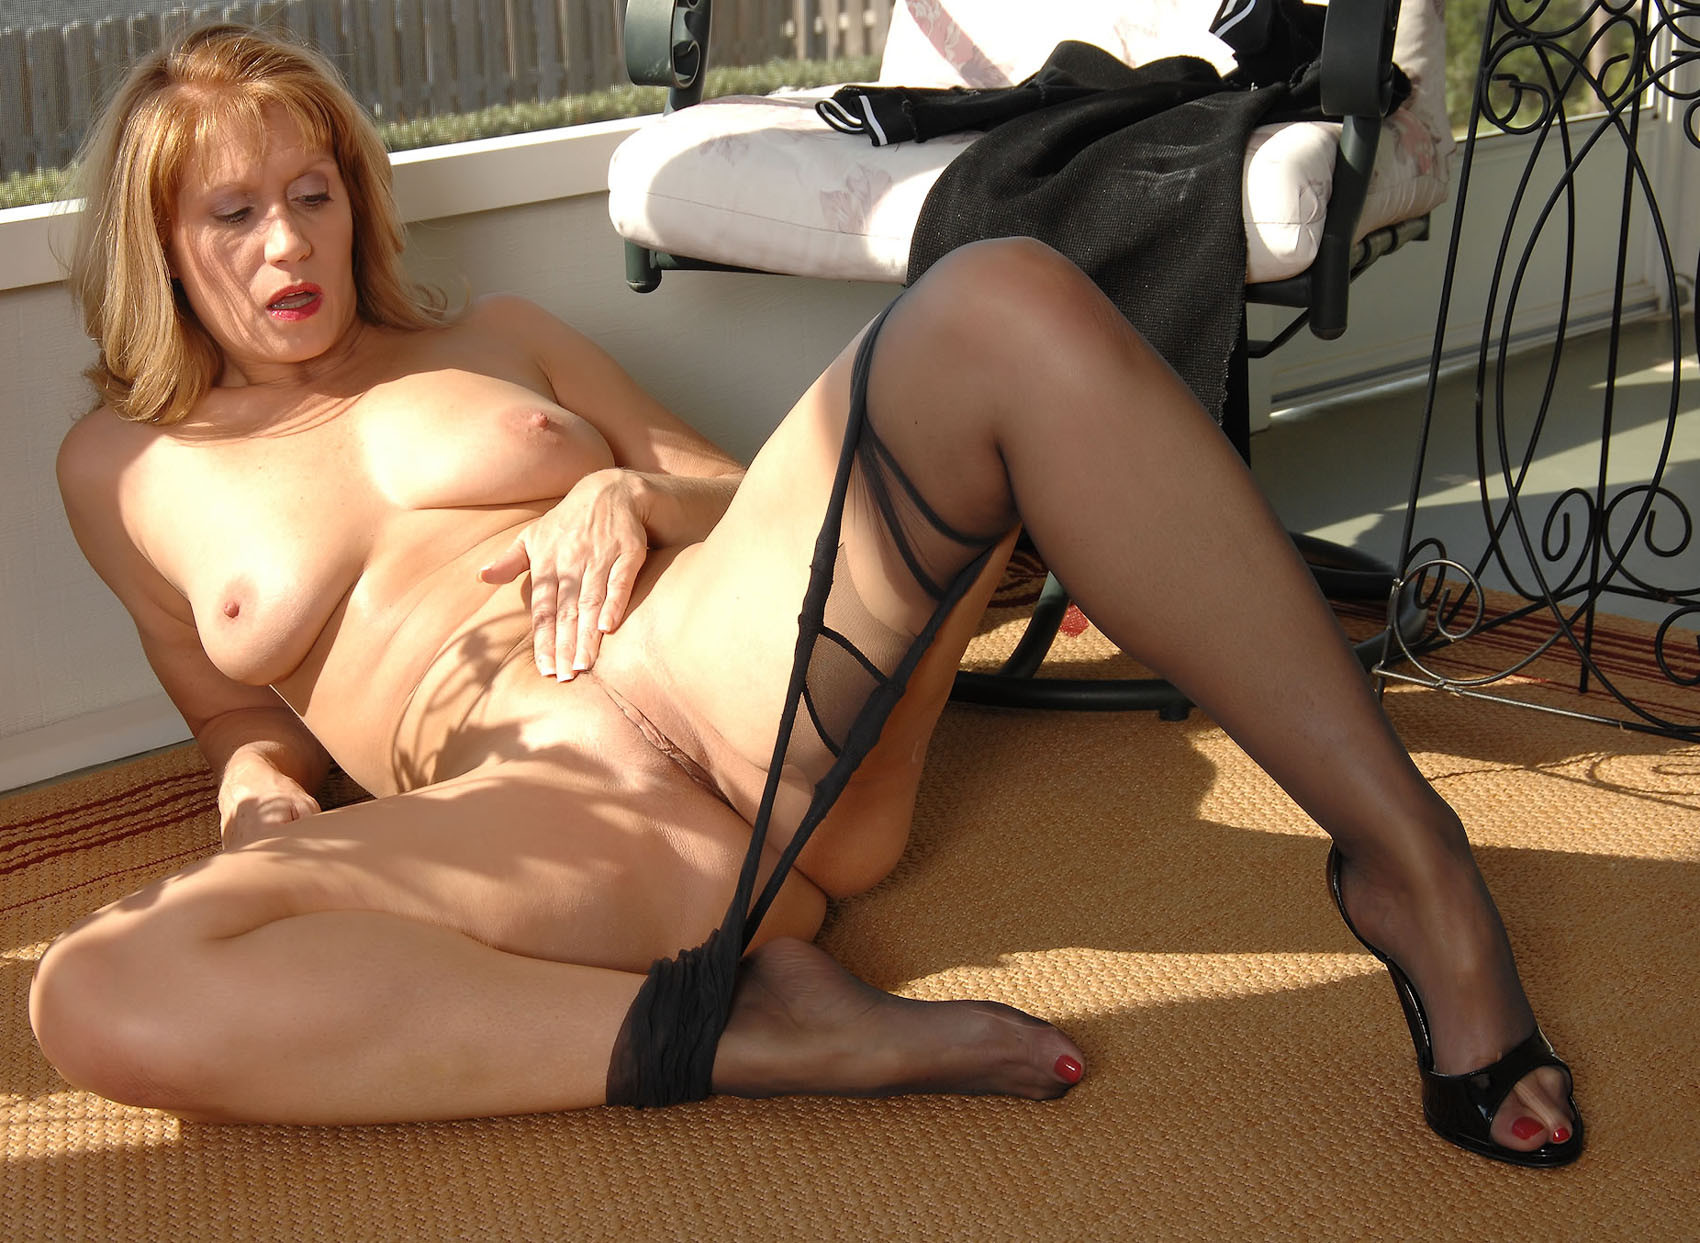 pantyhose - category. - 5 - tonight sex!